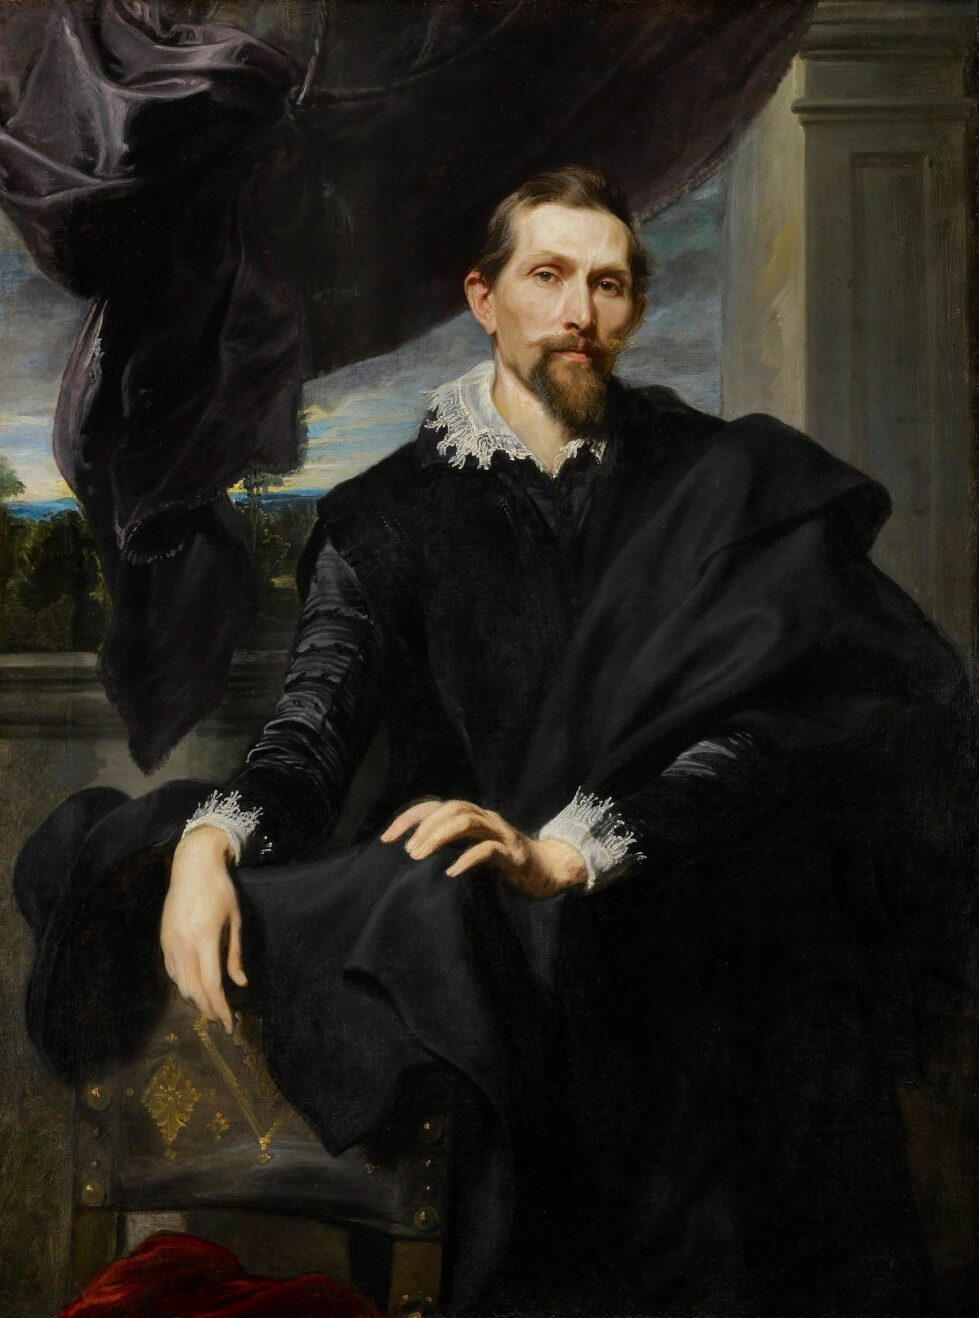 2. Anthony van Dyck (1599-1641), Frans Snyders, c. 1620 The Frick Collection, New York Henry Clay Frick Bequest (1909.1.39) © The Frick Collection